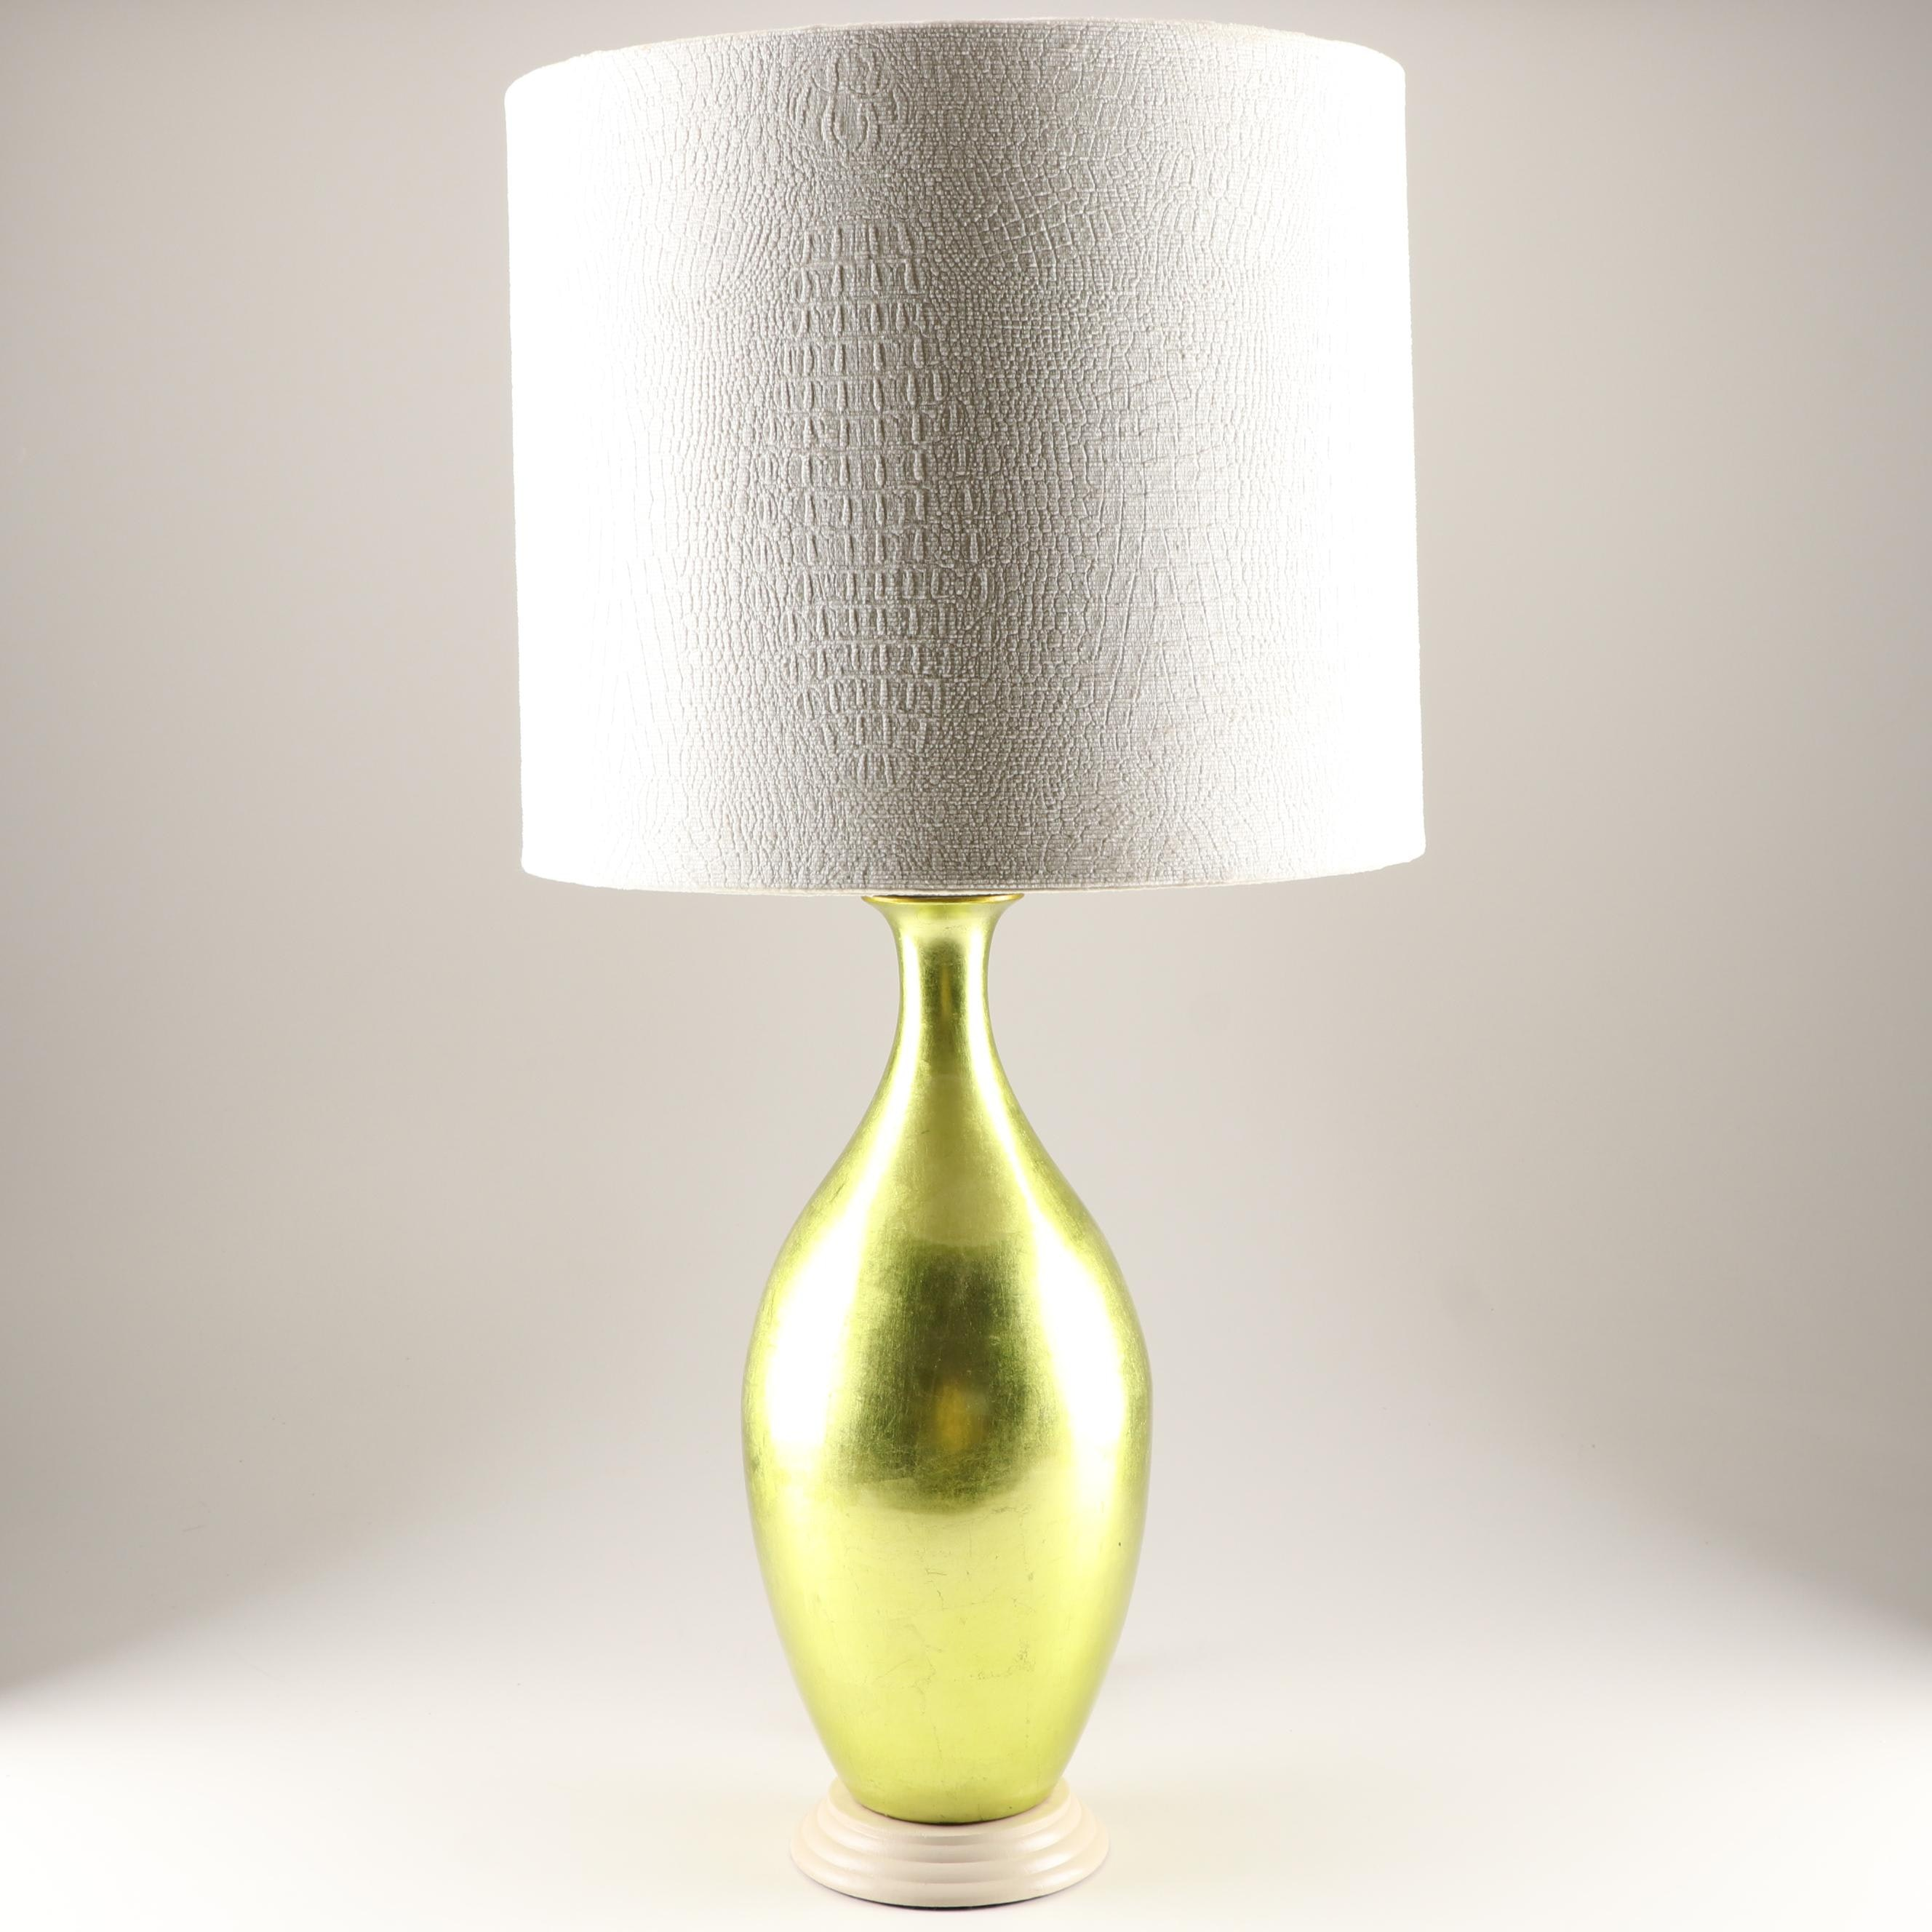 Contemporary Metallic Green Glass Table Lamp